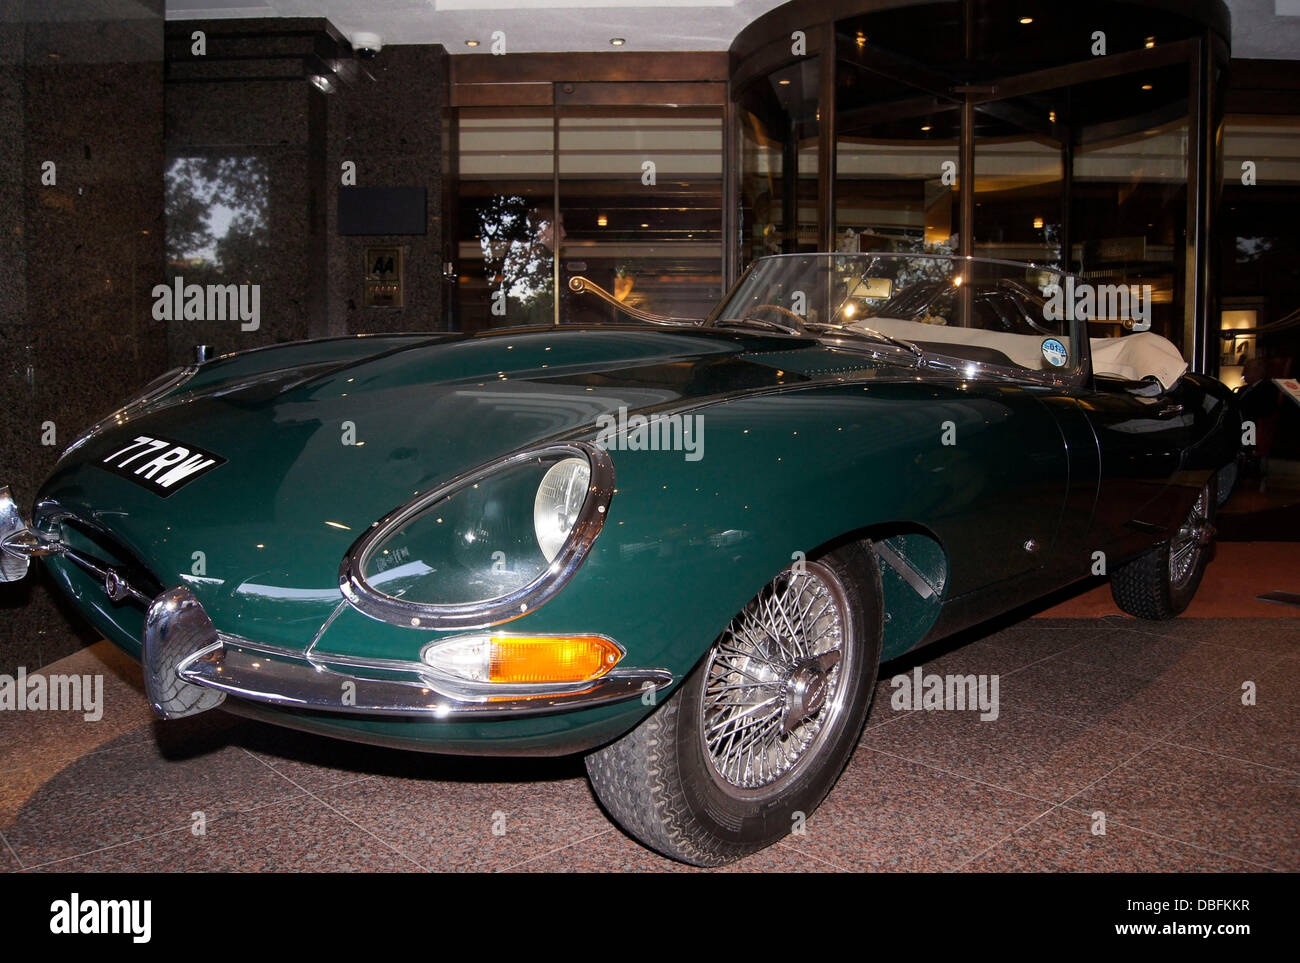 Worlds oldest Jaguar E Type 77 RW at the 50th Anniversay party of the Jumeirah Carlton Tower Hotel in Knightsbridge - Stock Image